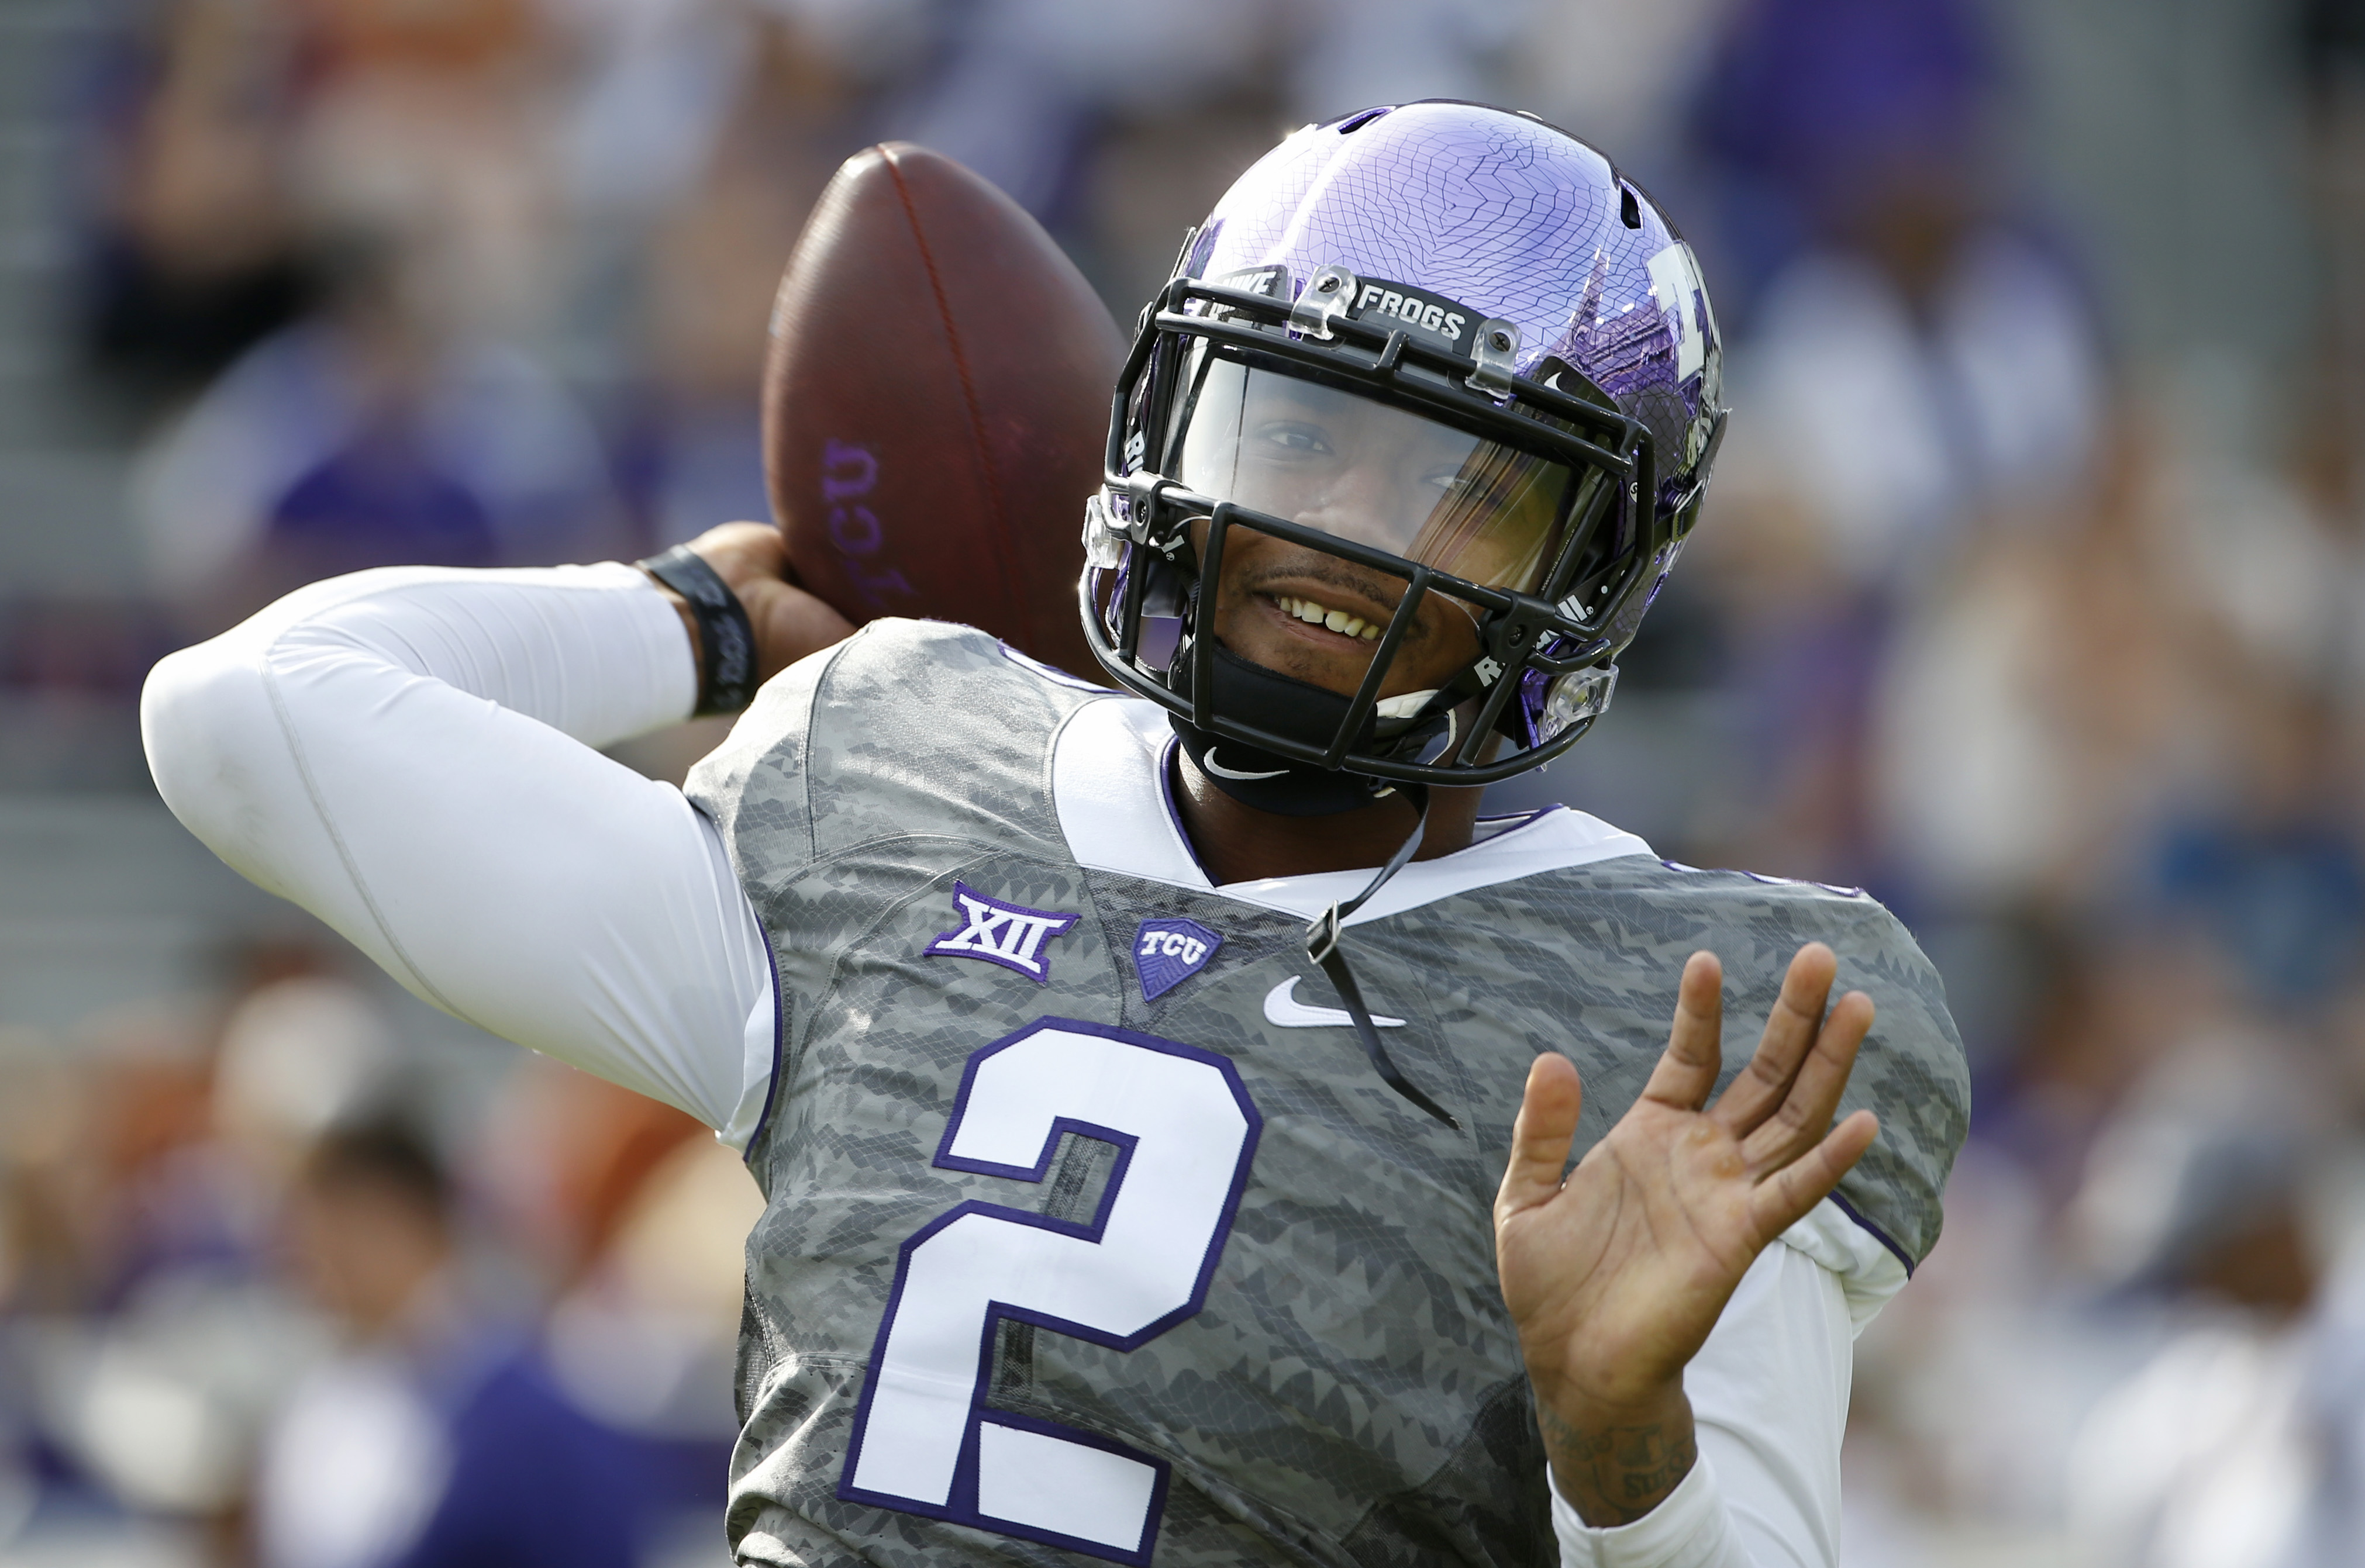 CORRECTS DATE TO OCT. 3, NOT OCT. 2 - TCU quarterback Trevone Boykin (2) throws before the TCU Horned Frogs take on the Texas Longhorns in a NCAA football game Saturday, Oct. 3, 2015, in Fort Worth, Texas. (AP Photo/Ron Jenkins)